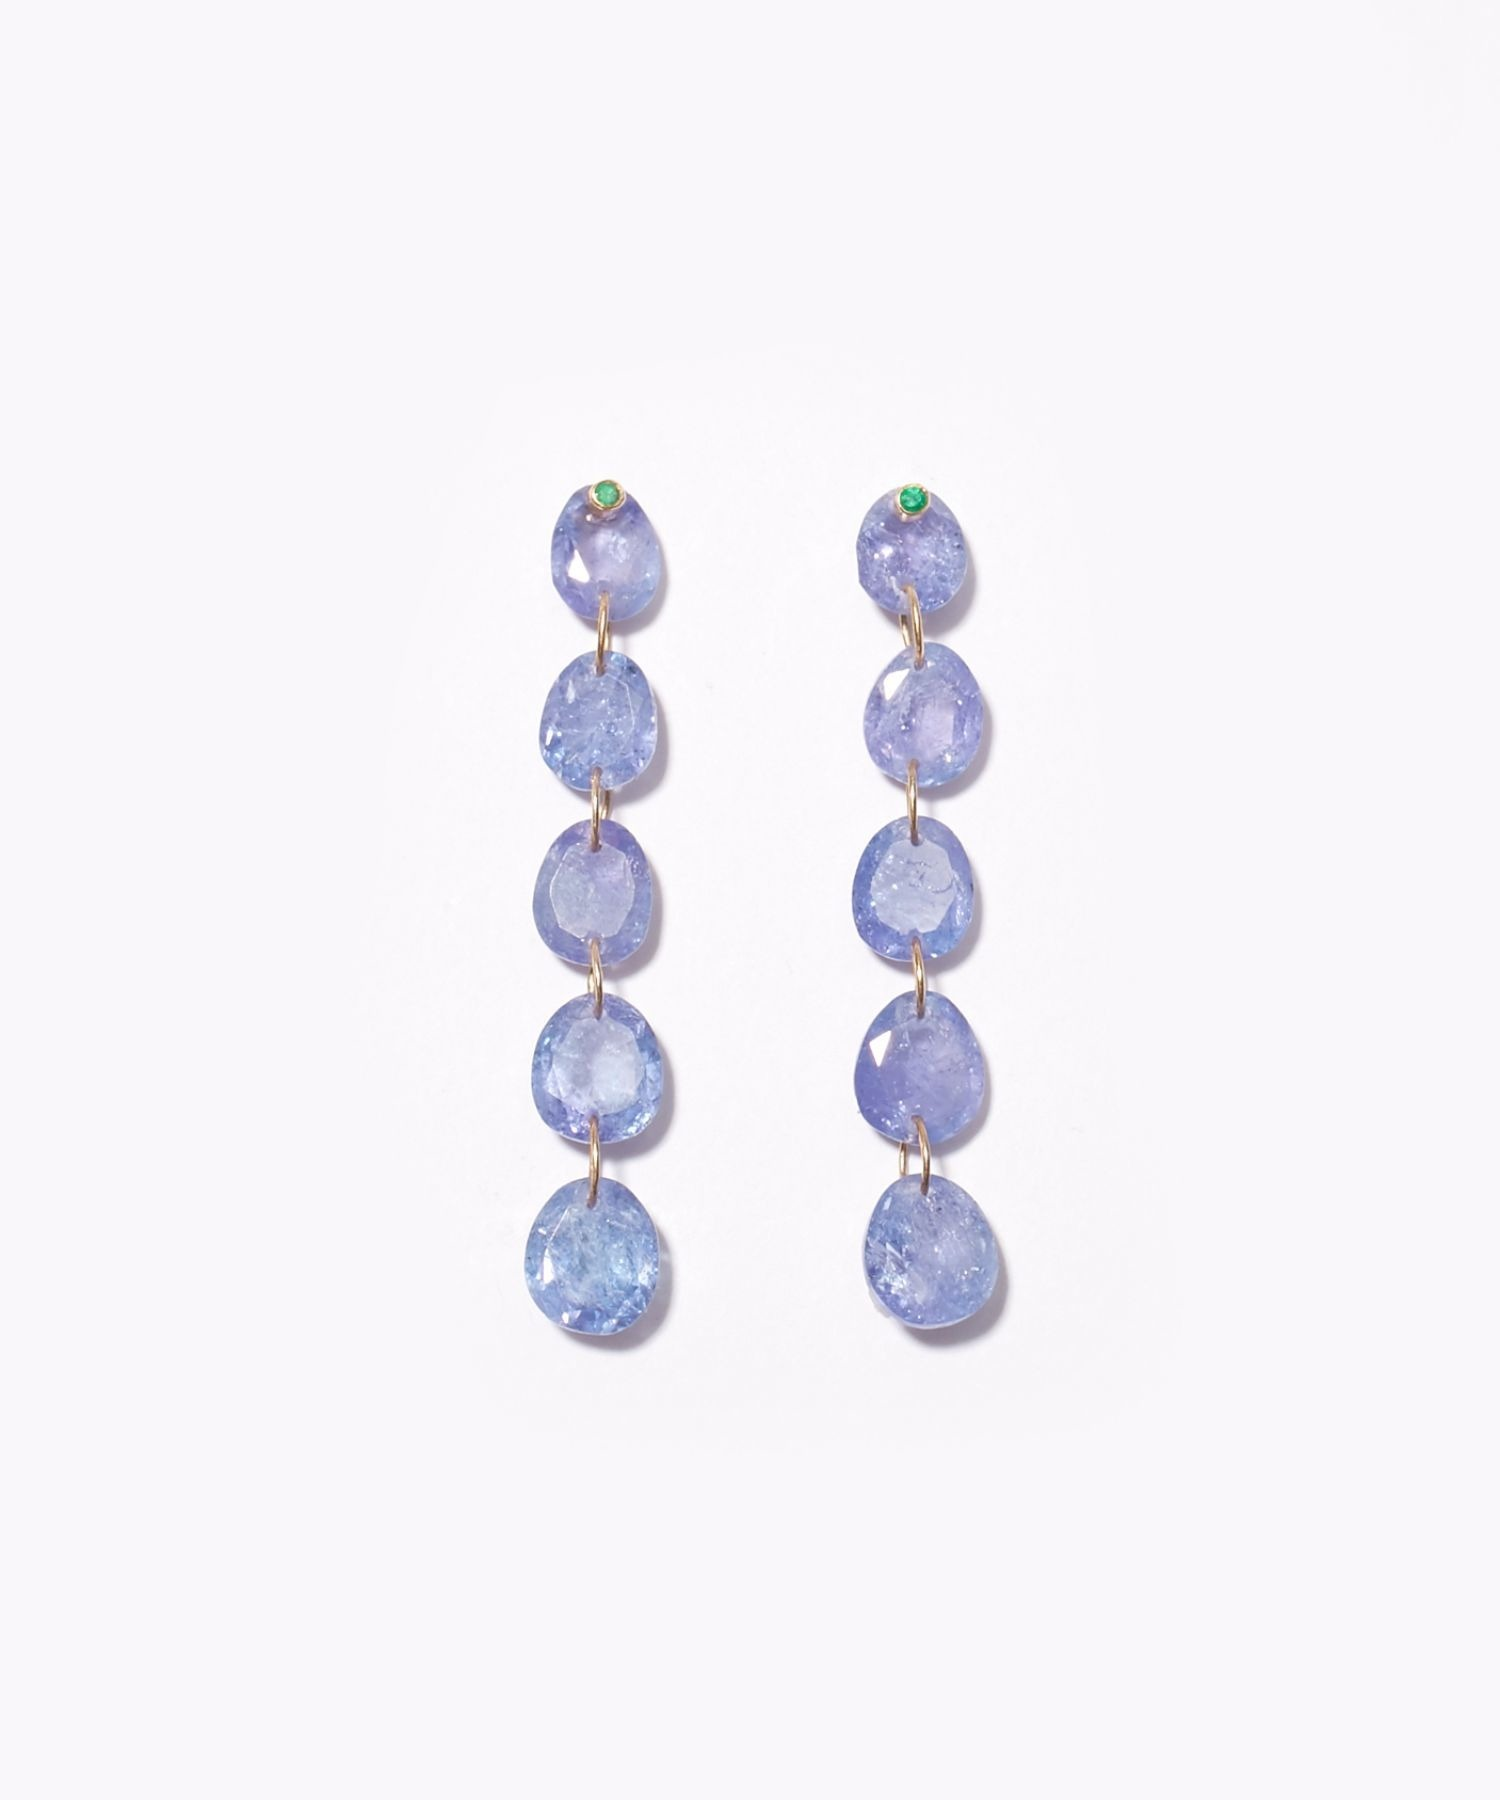 [eden] K10 tanzanite tear drops pierced earring